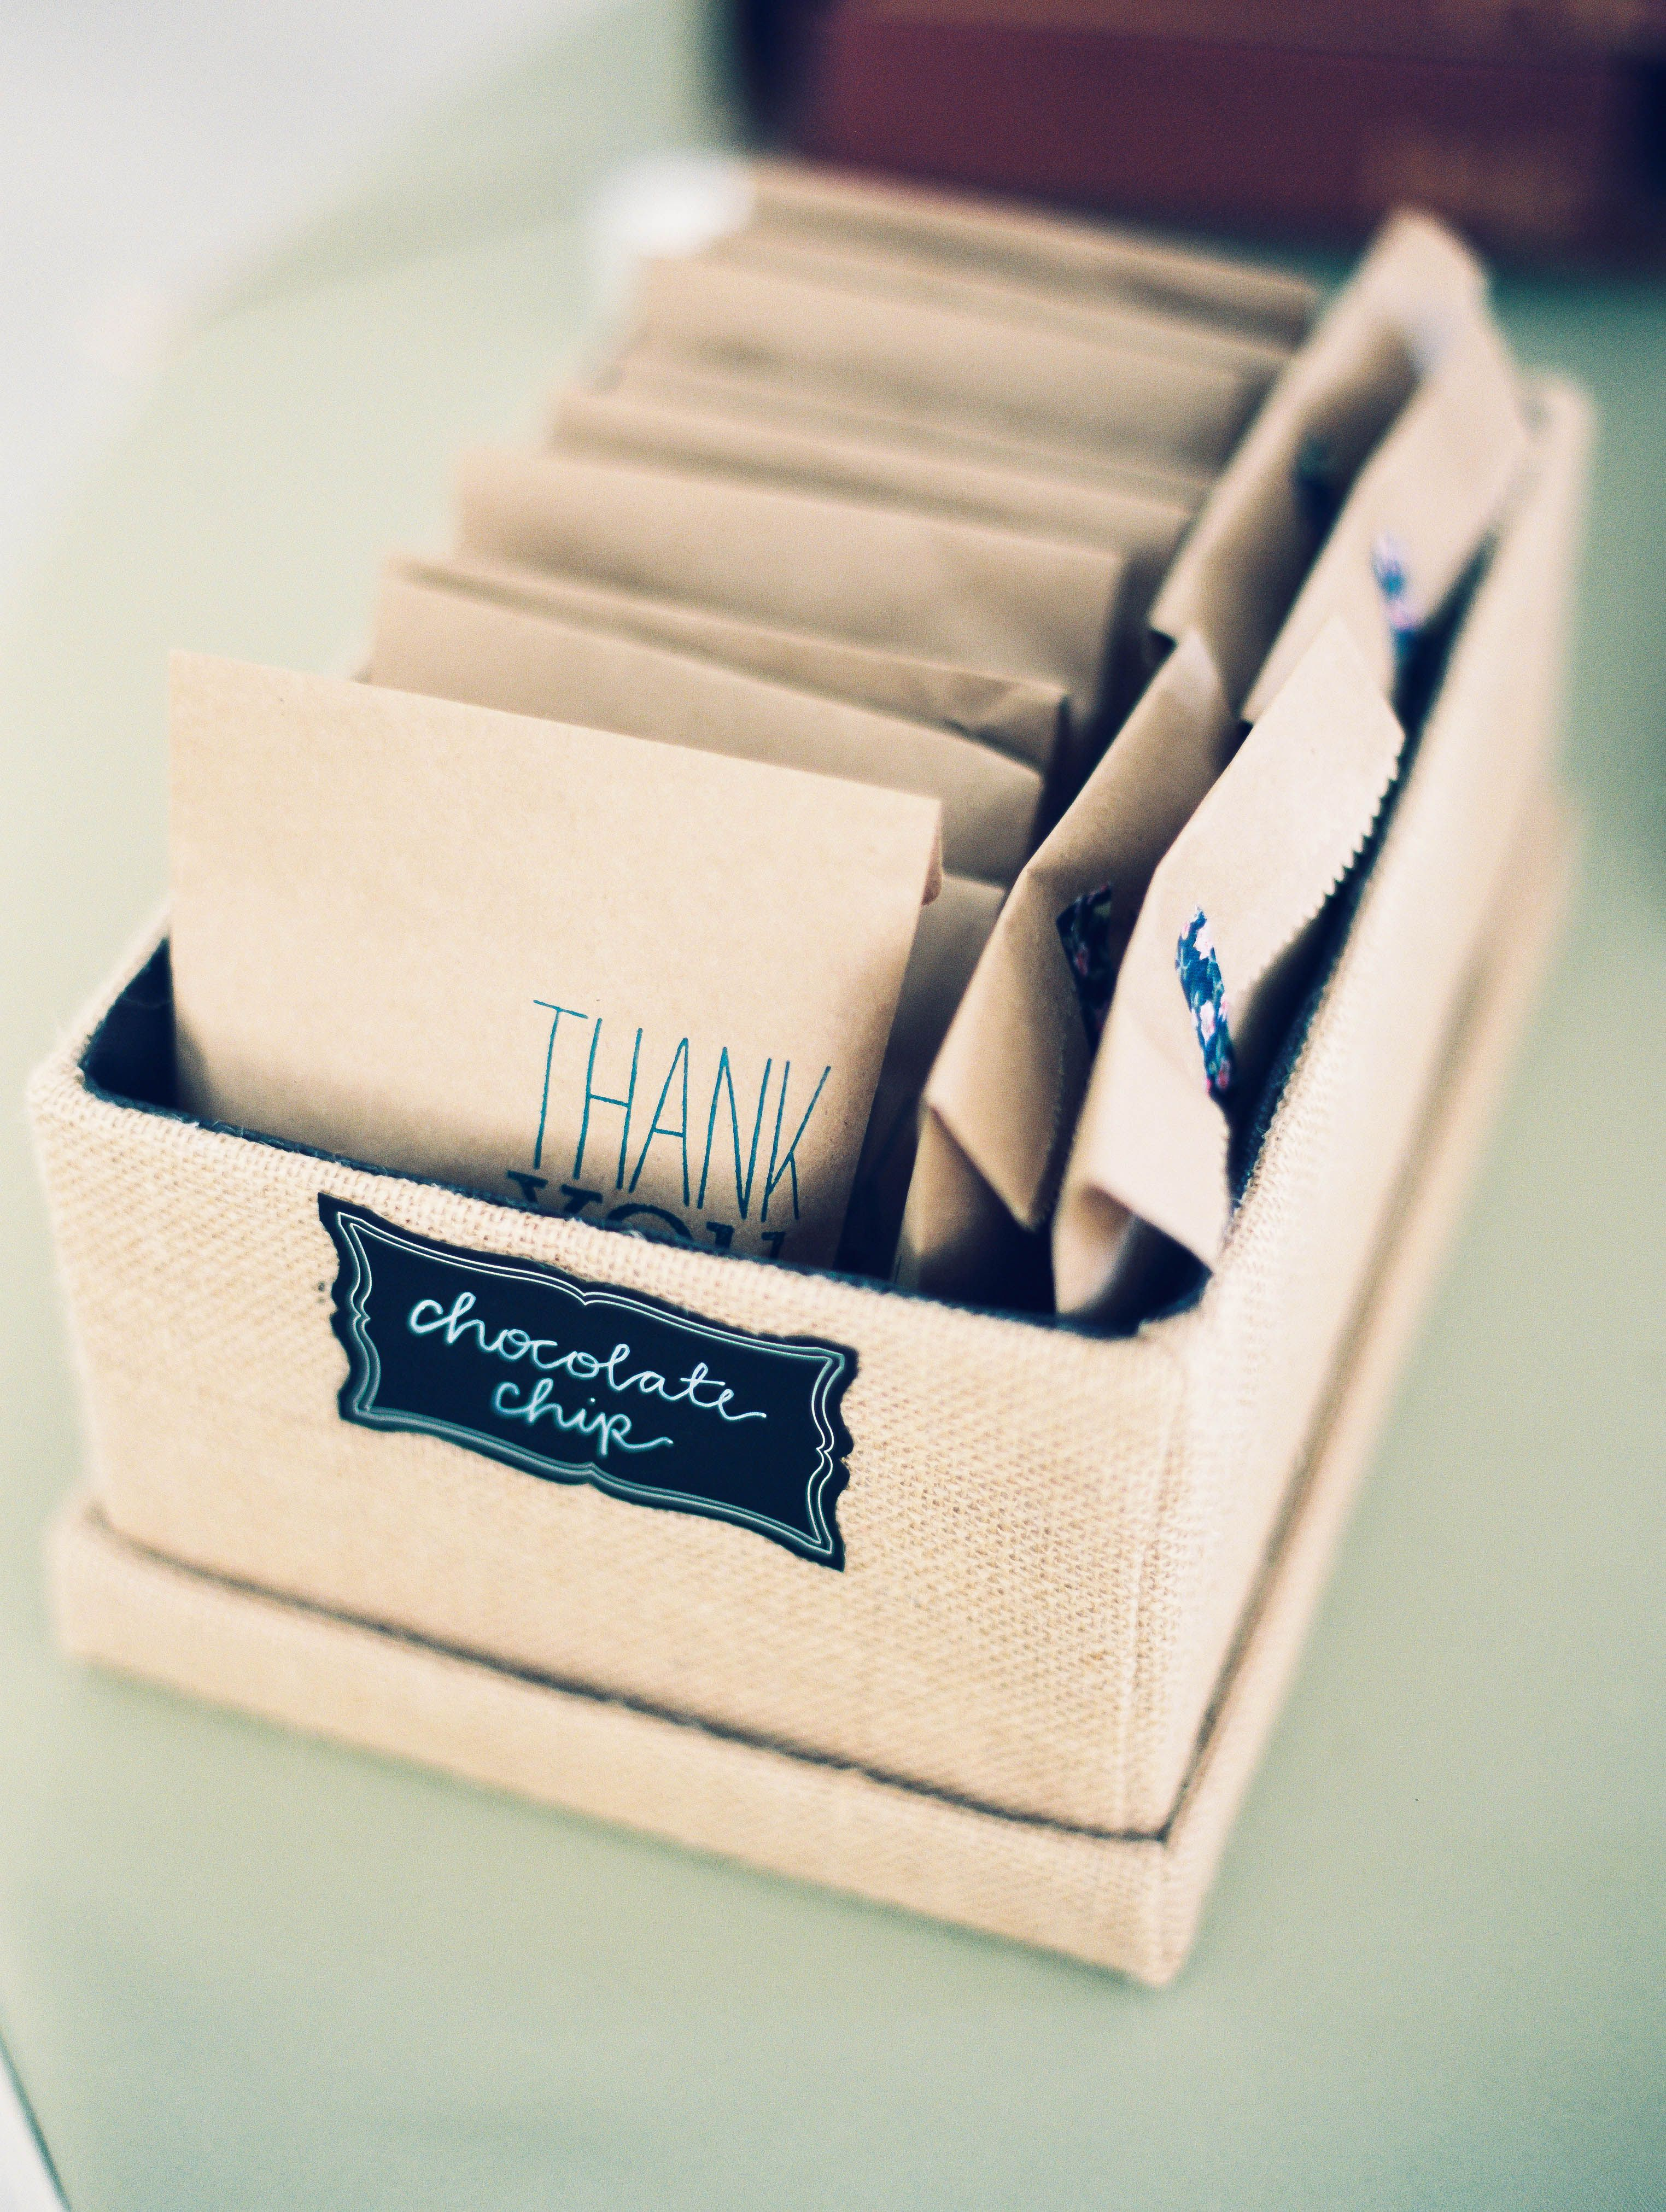 DIY Chocolate Chip Cookie Wedding Favors - Send guests home with these sweet treats.  Shop for these EcoCraft Grease Resistant Cookie bags at http://www.roundeyesupply.com/EcoCraft-GR-Pastry-and-Cookie-Bag-Natural-p/10903003.htm